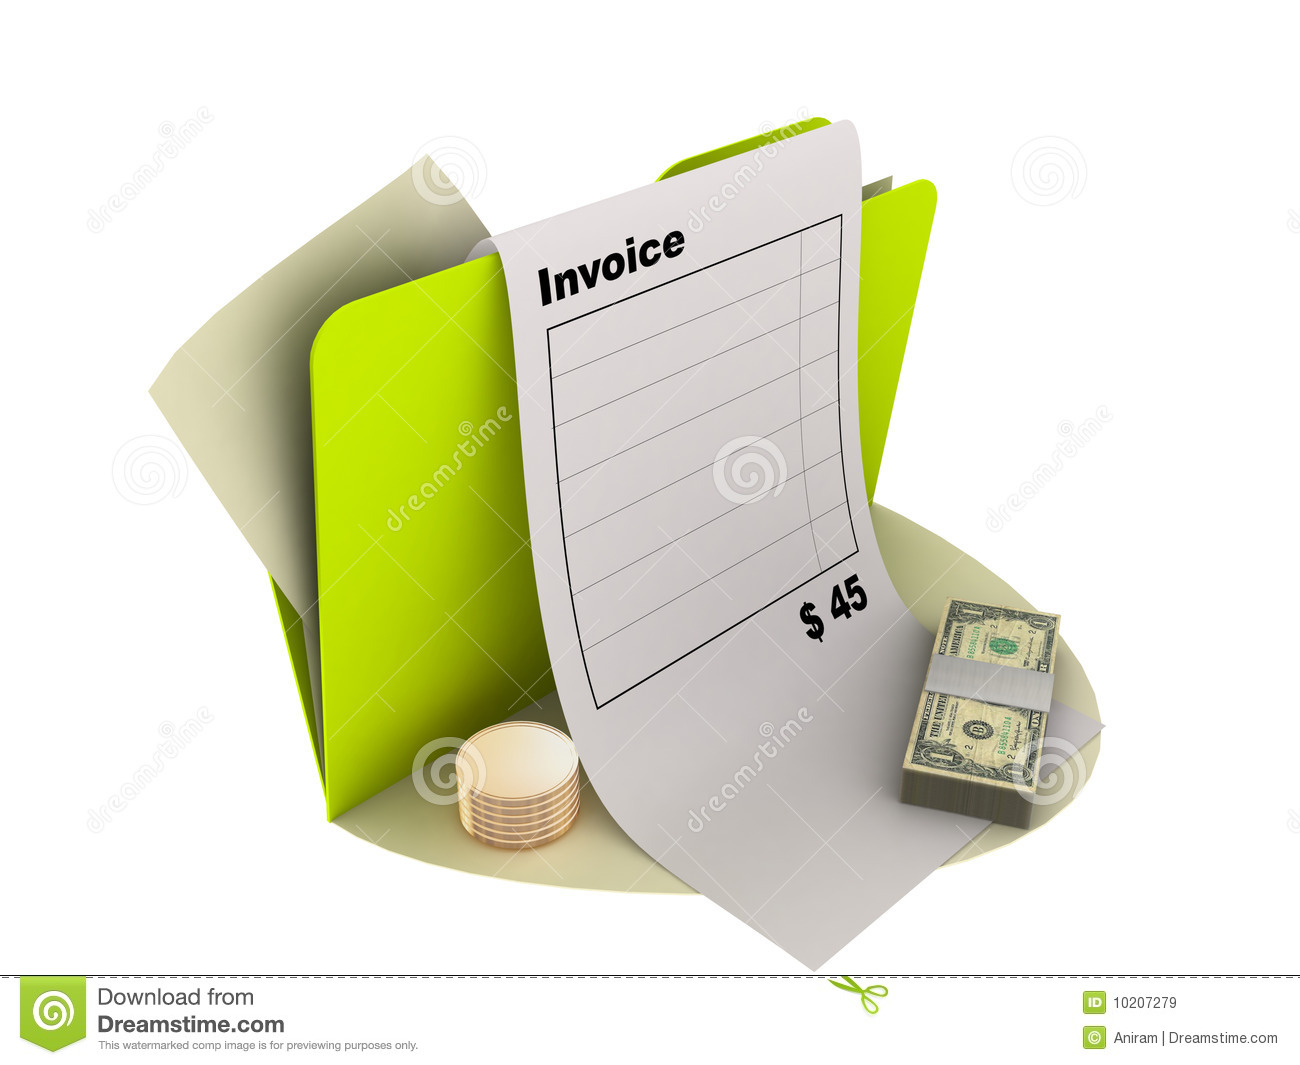 Gamestop Return Policy No Receipt Word Invoice Stock Illustrations   Invoice Stock Illustrations  Meps Receipt Excel with Rental Invoice Template Word Invoice Icon Royalty Free Stock Images My Invoice Software Pdf